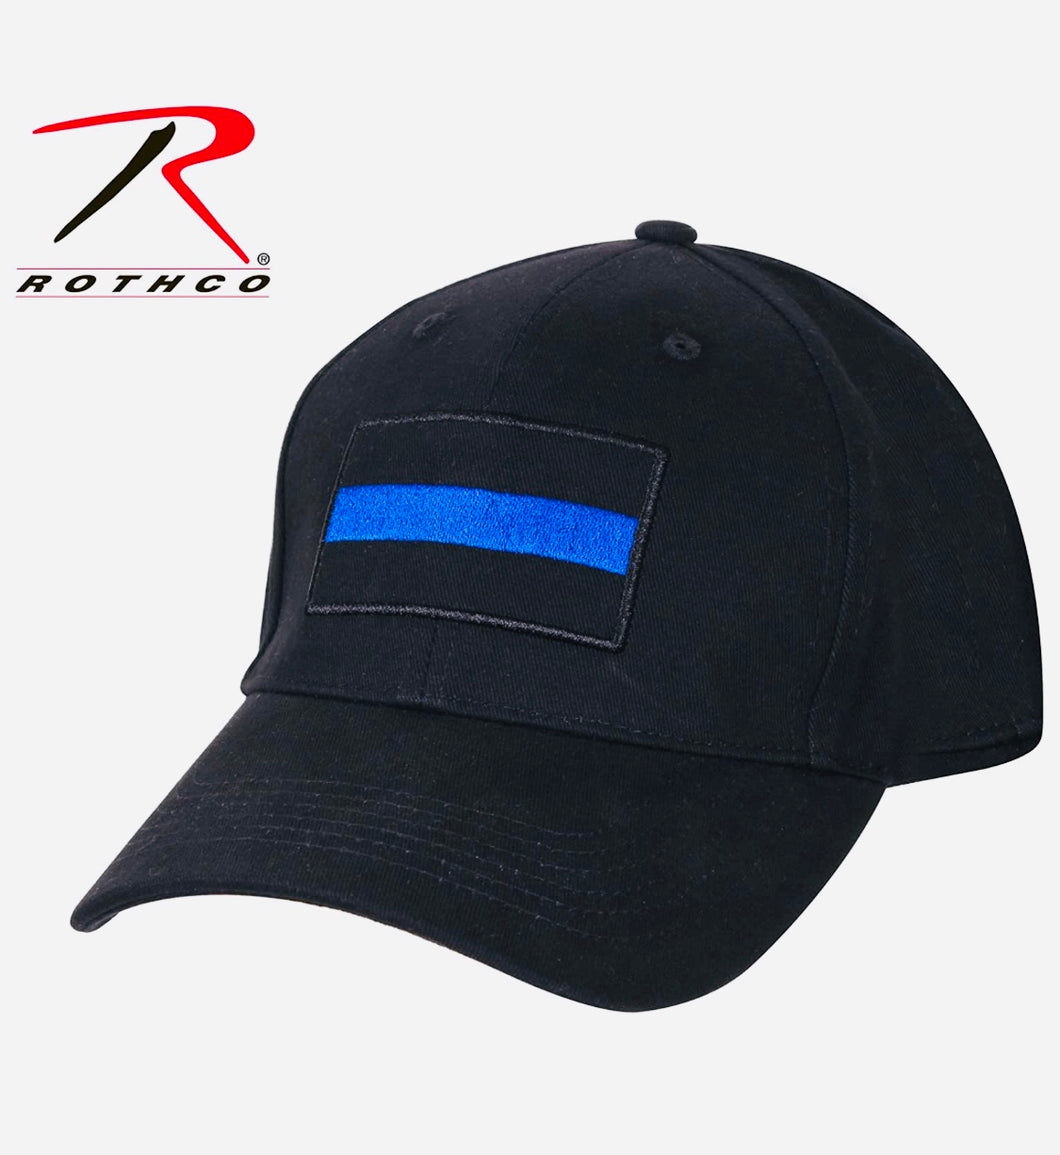 Thin Blue Line Low Profile Cap, Black with Thin Blue Stripe, One Size Fits All